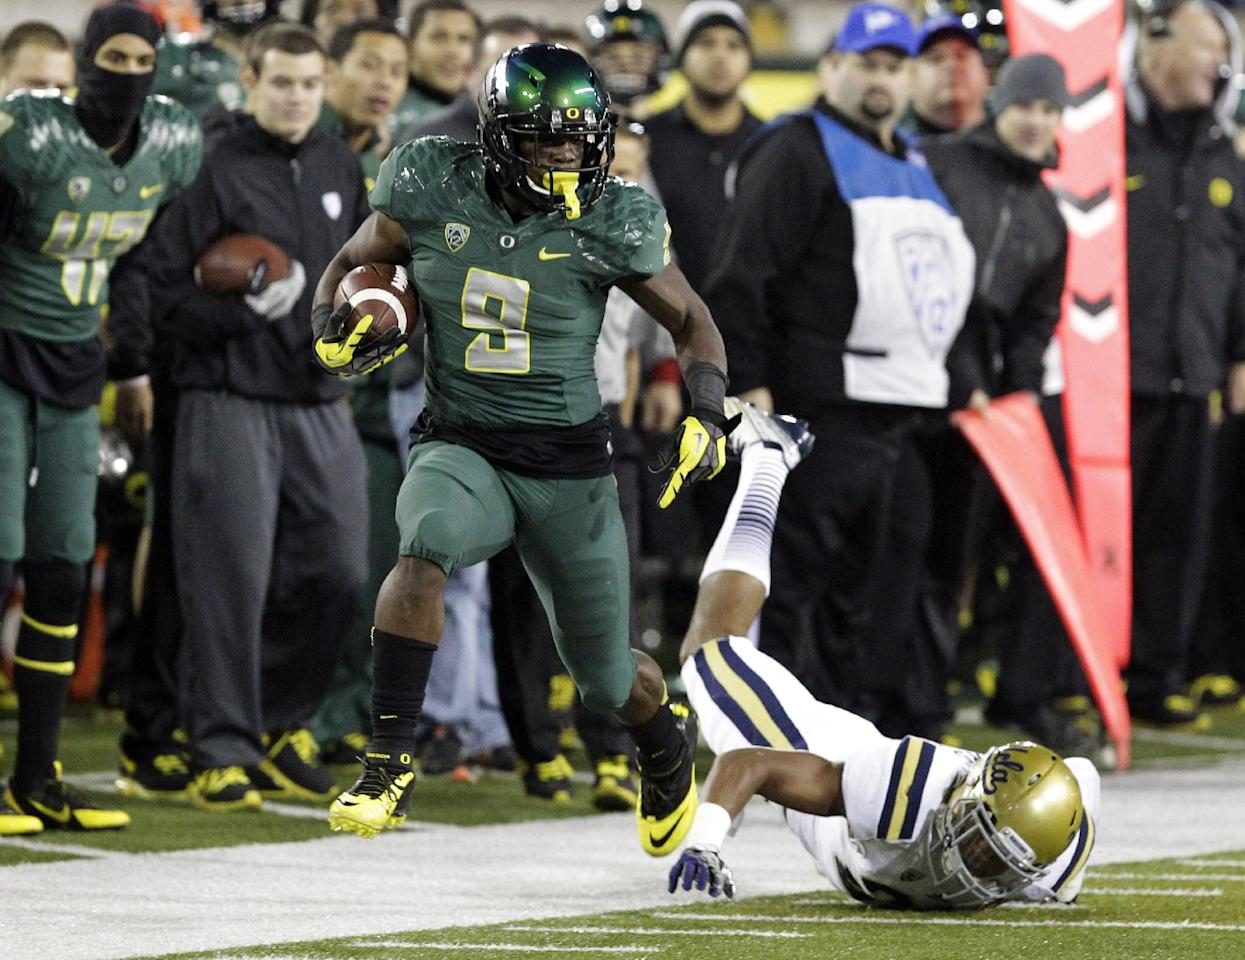 Oregon running back Byron Marshall, left, evades UCLA defender Anthony Jefferson as he heads down the sideline during the second half of an NCAA college football game in Eugene, Ore., Saturday, Oct. 26, 2013. Marshall ran for 133 yards and three touchdowns for a 42-14 victory. (AP Photo/Don Ryan)